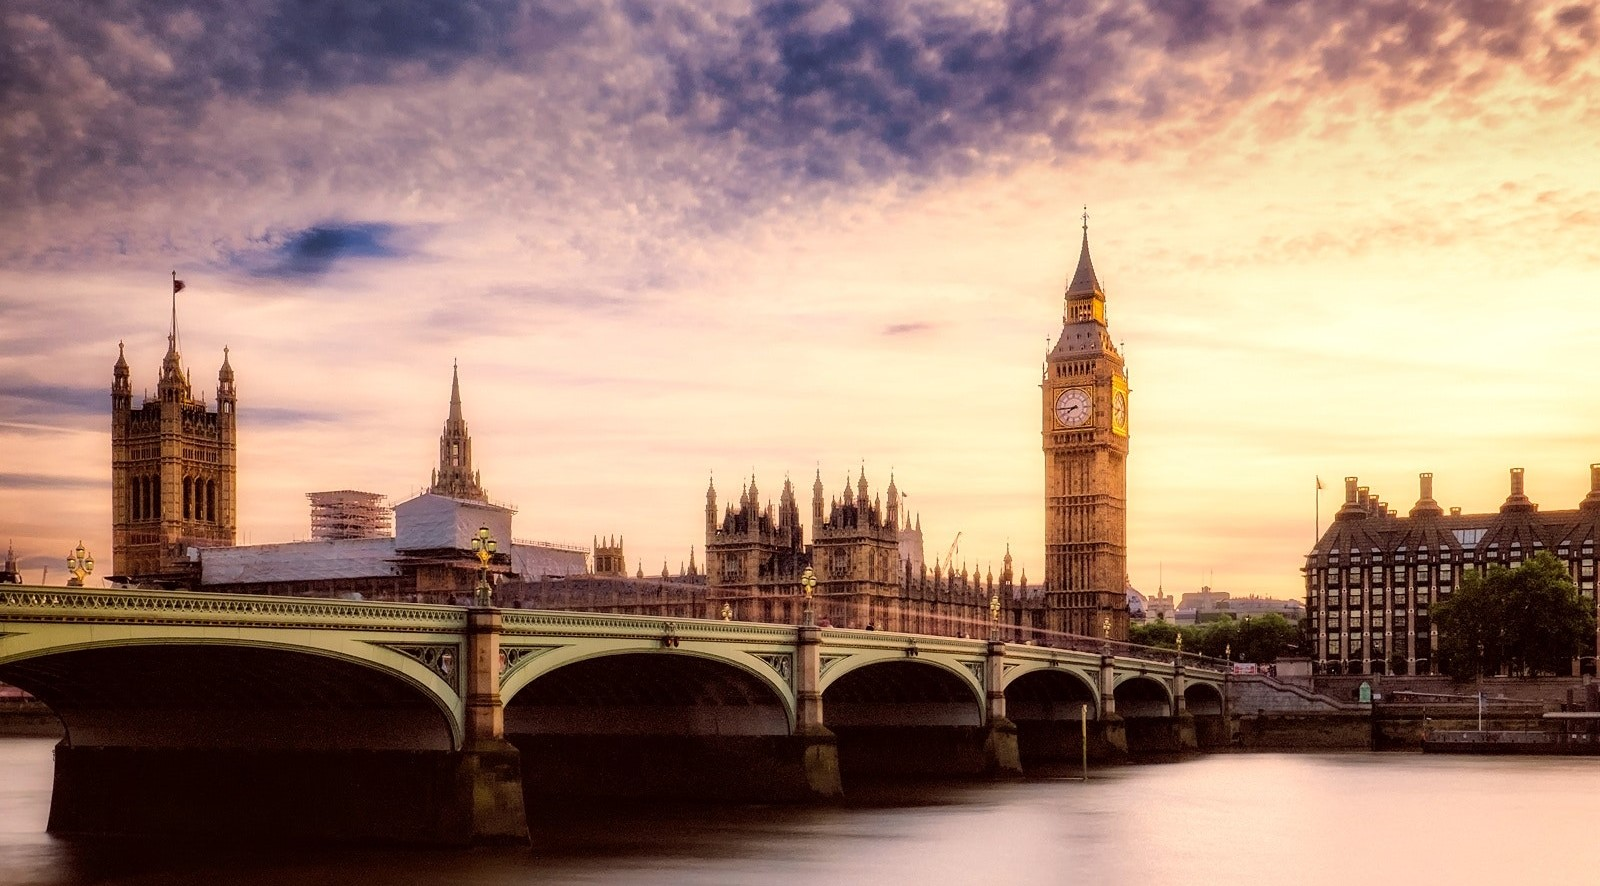 big-ben-bridge-city-460665 (2)